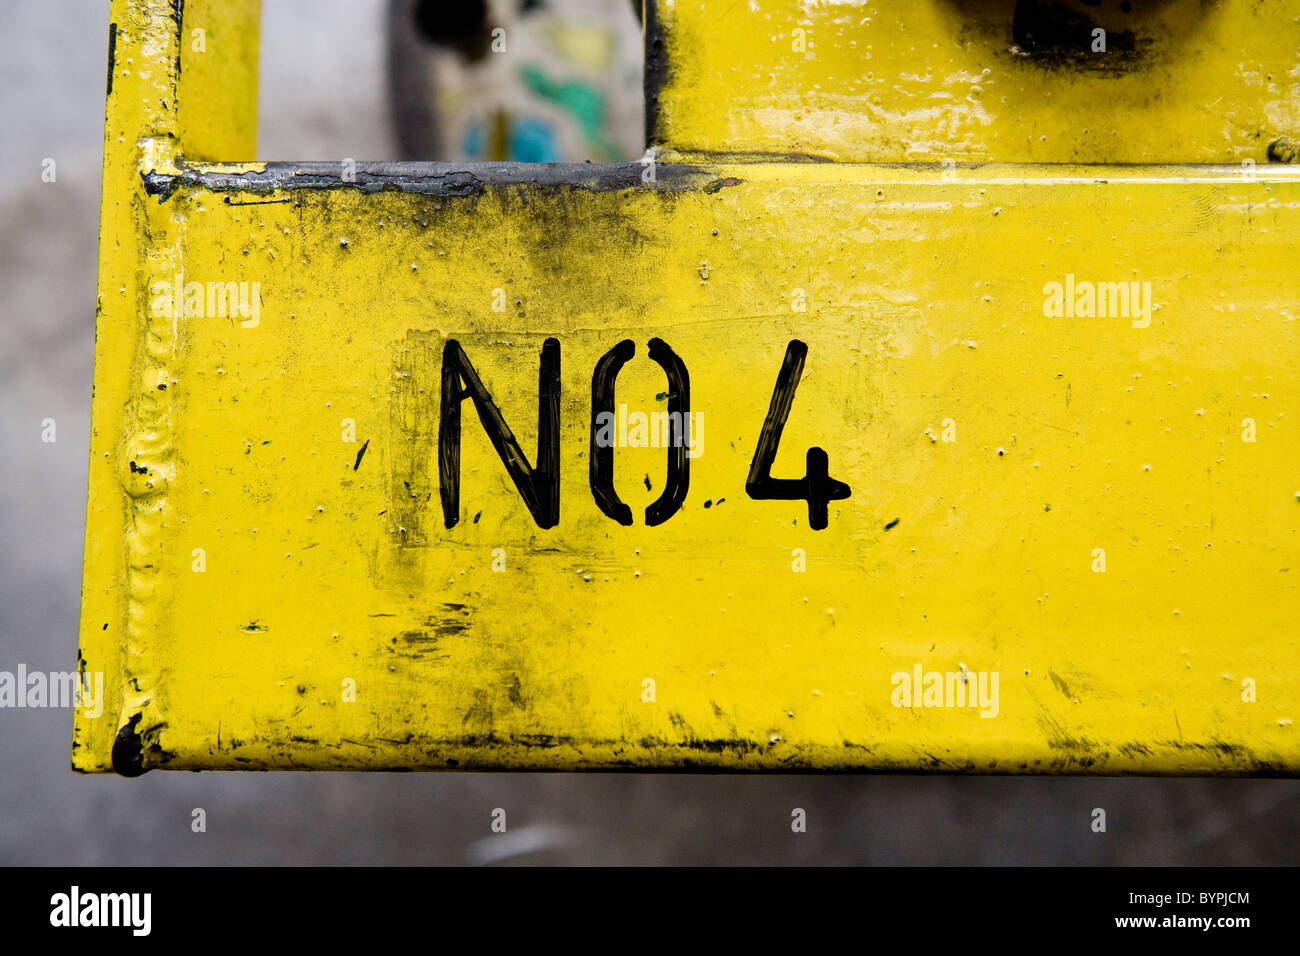 No 4 stenciled on yellow metal surface in factory - Stock Image